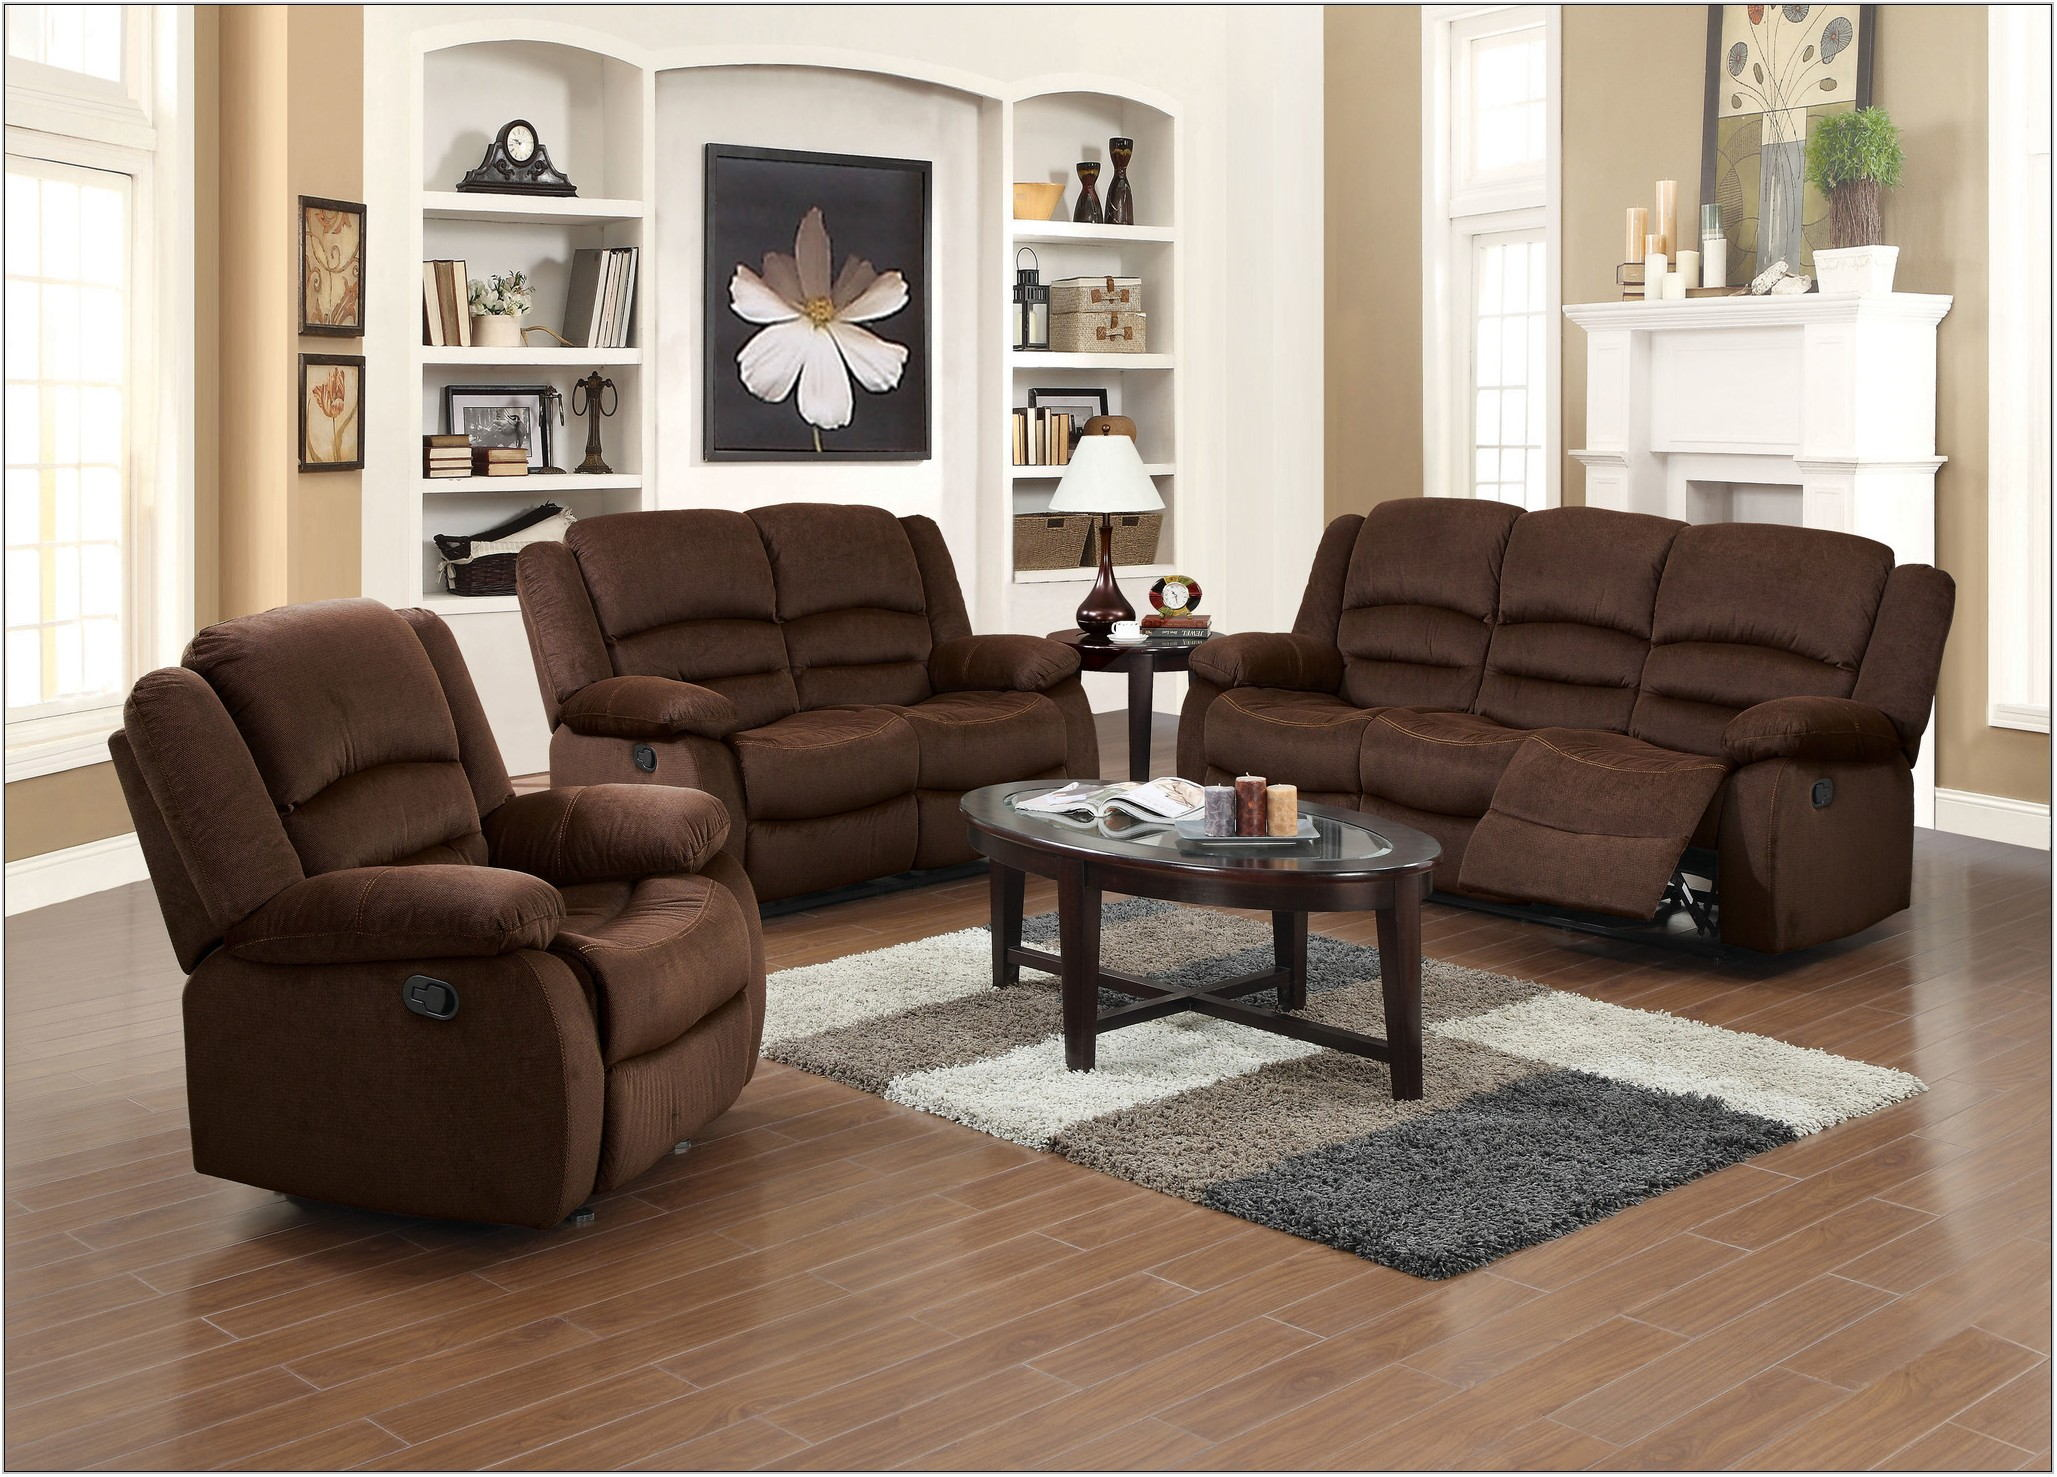 Bailey Living Room Furniture